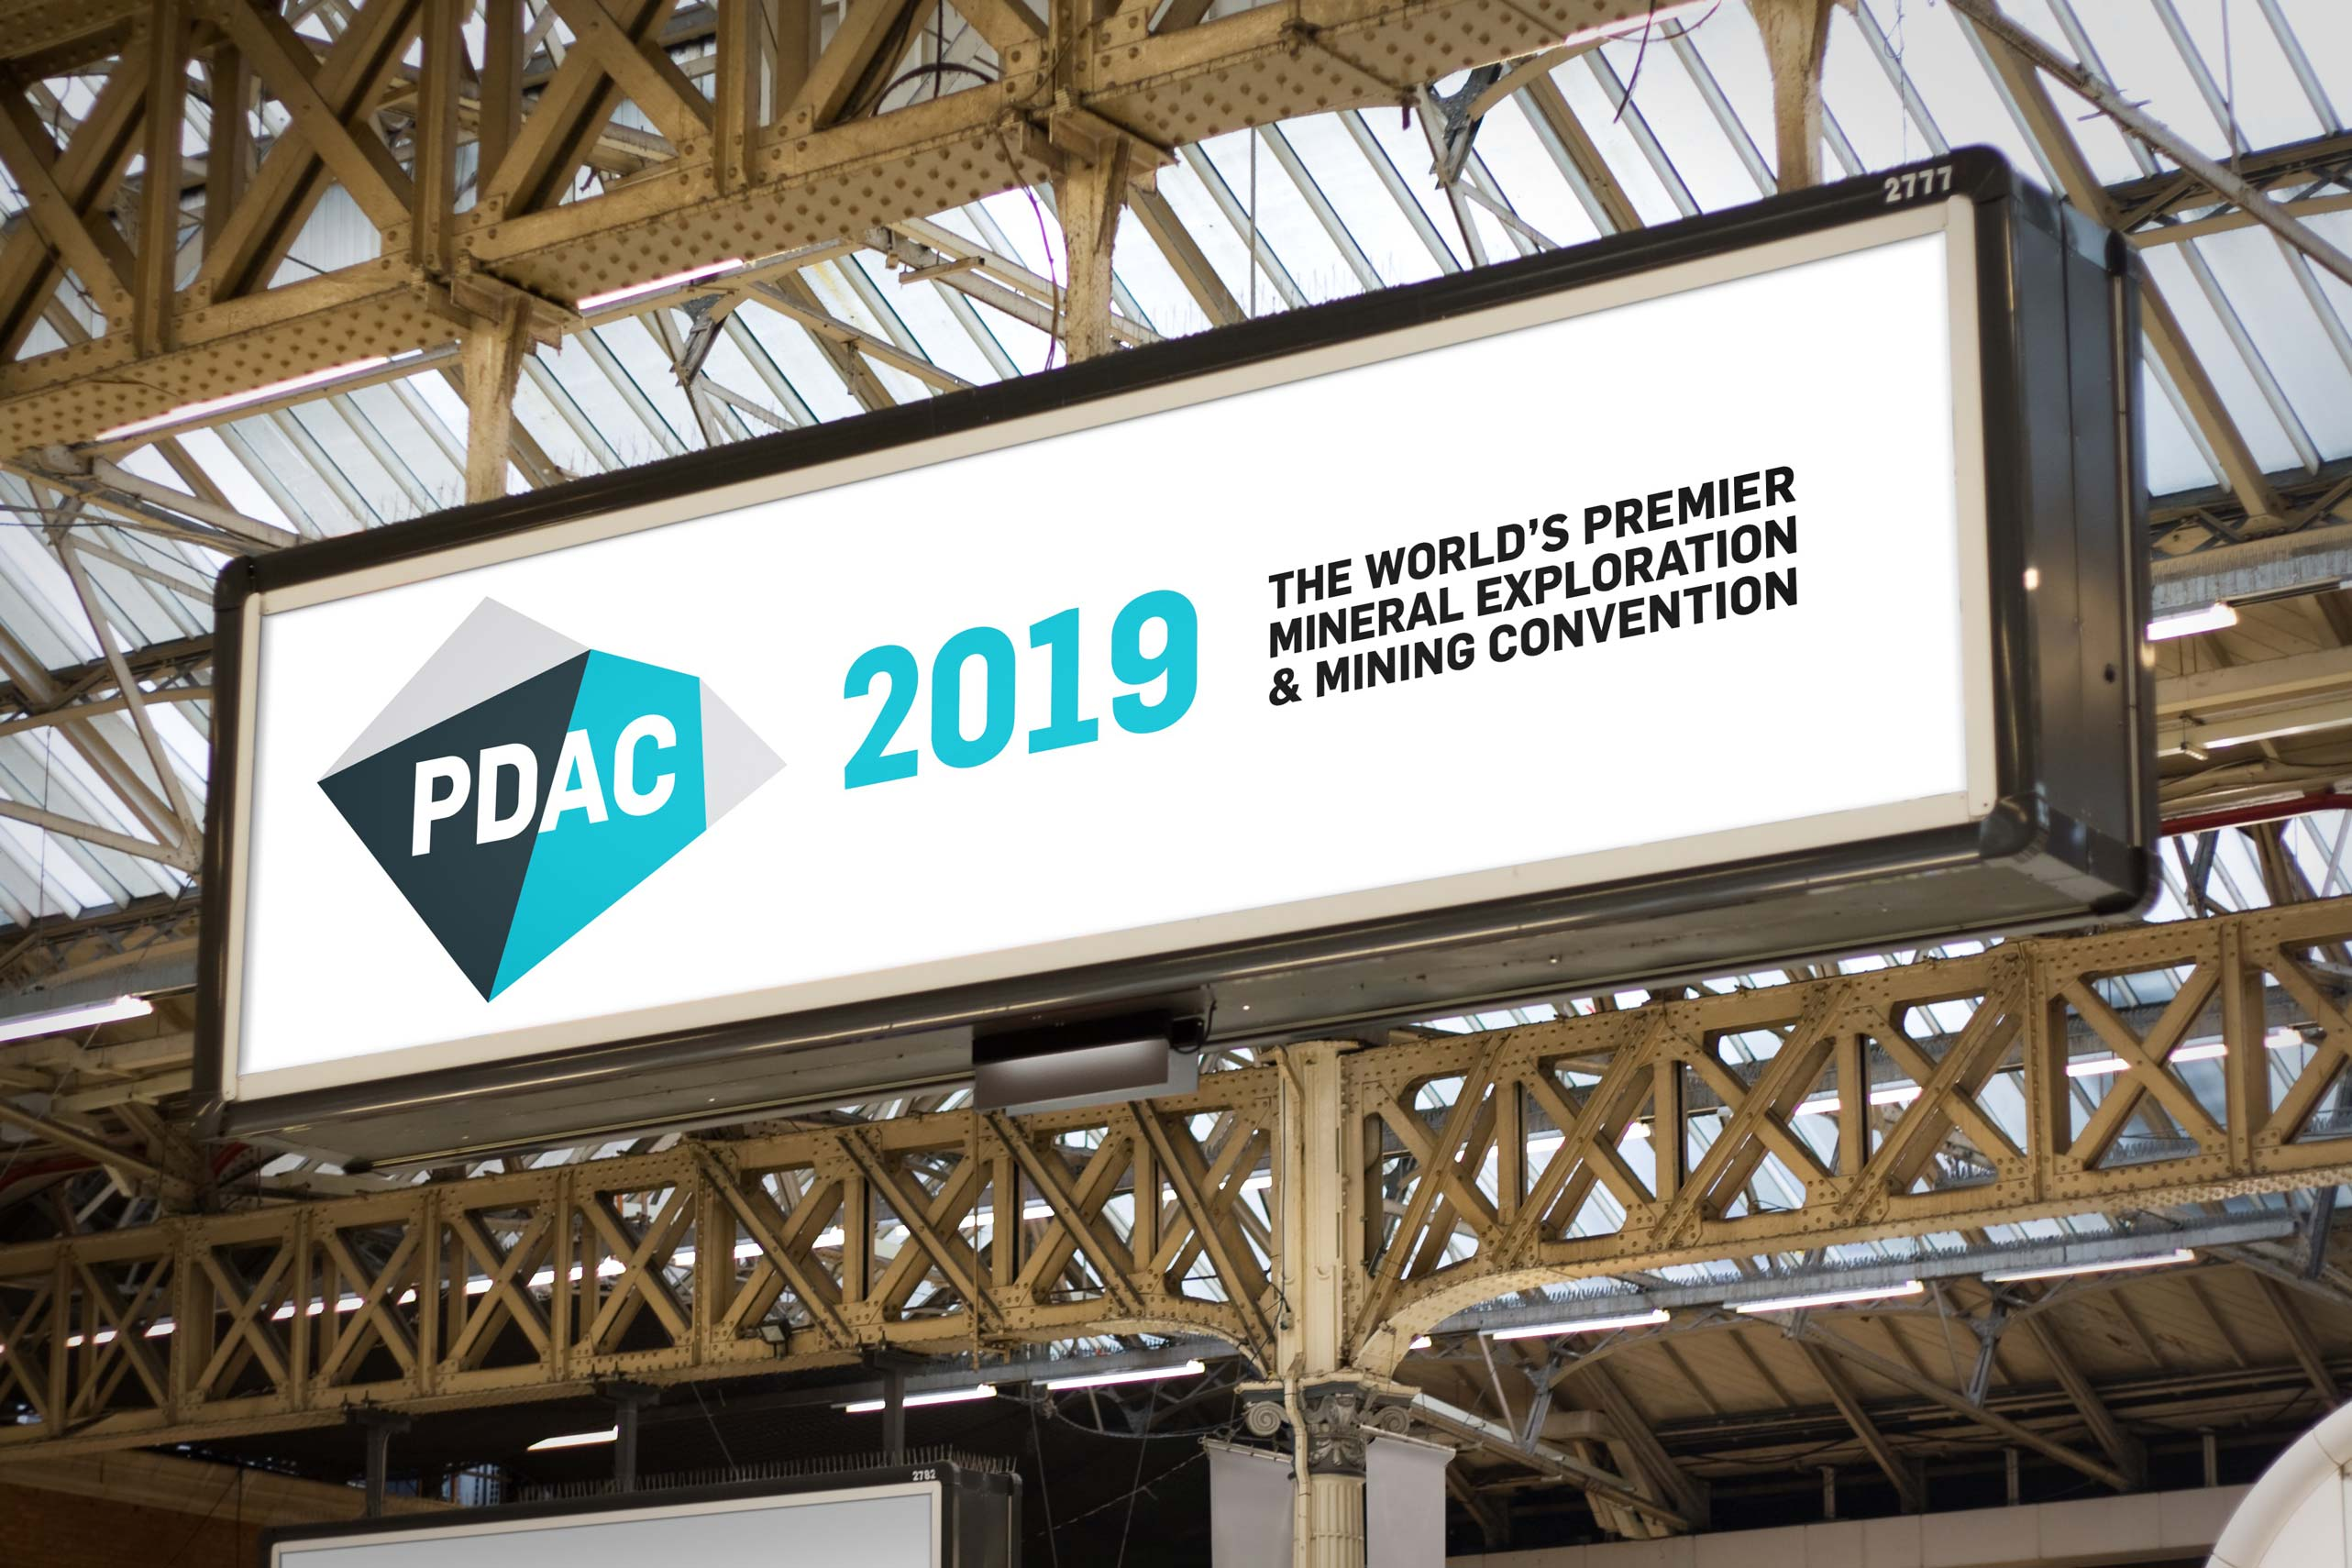 Brands_PDAC_Convention_SIGN_2019.jpeg